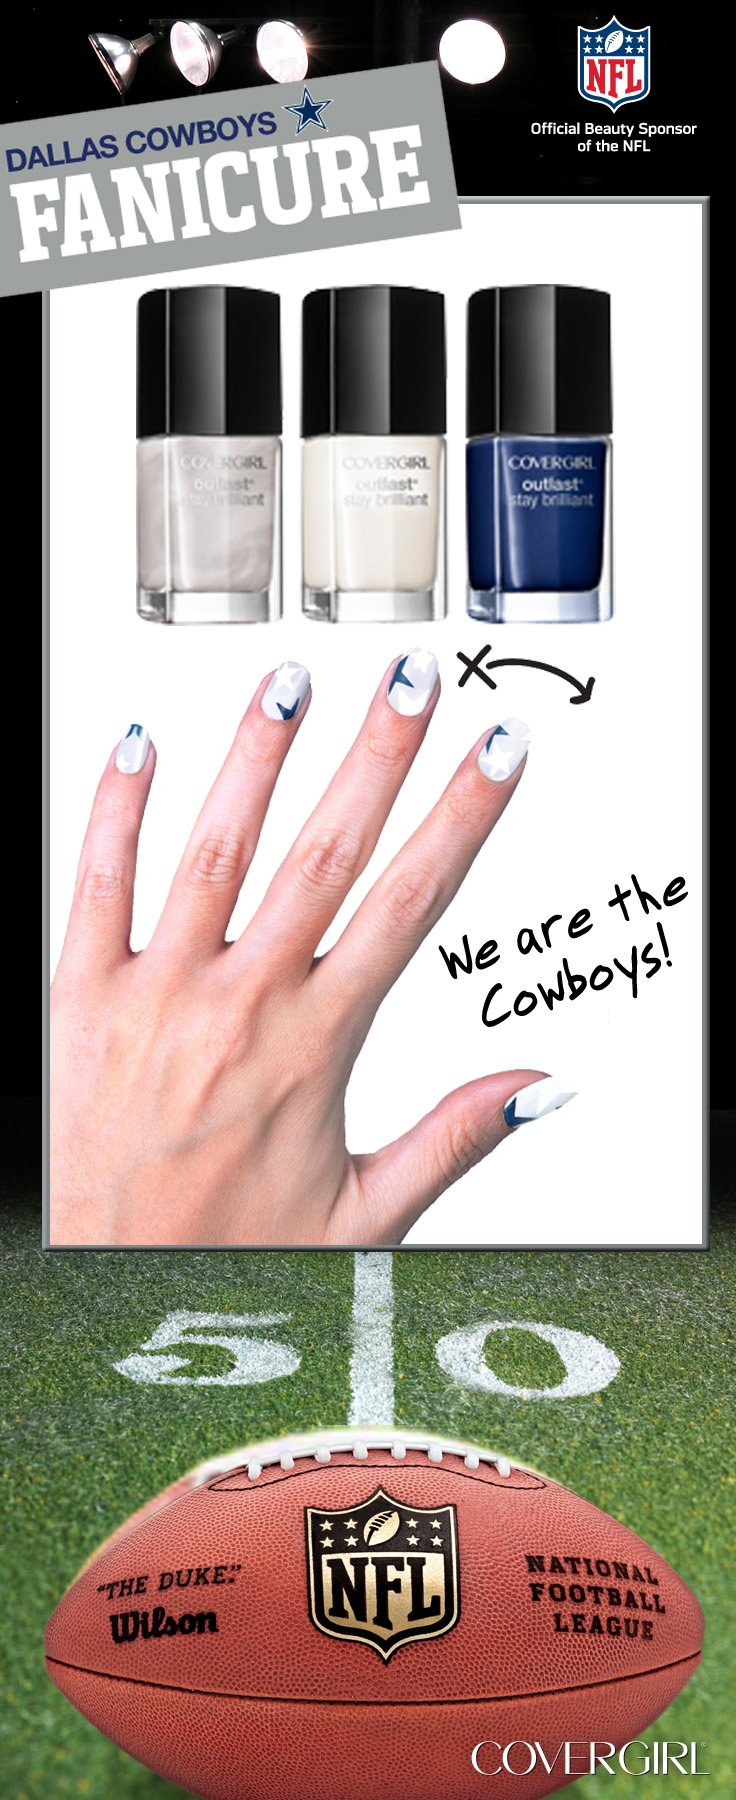 We are the Cowboys!